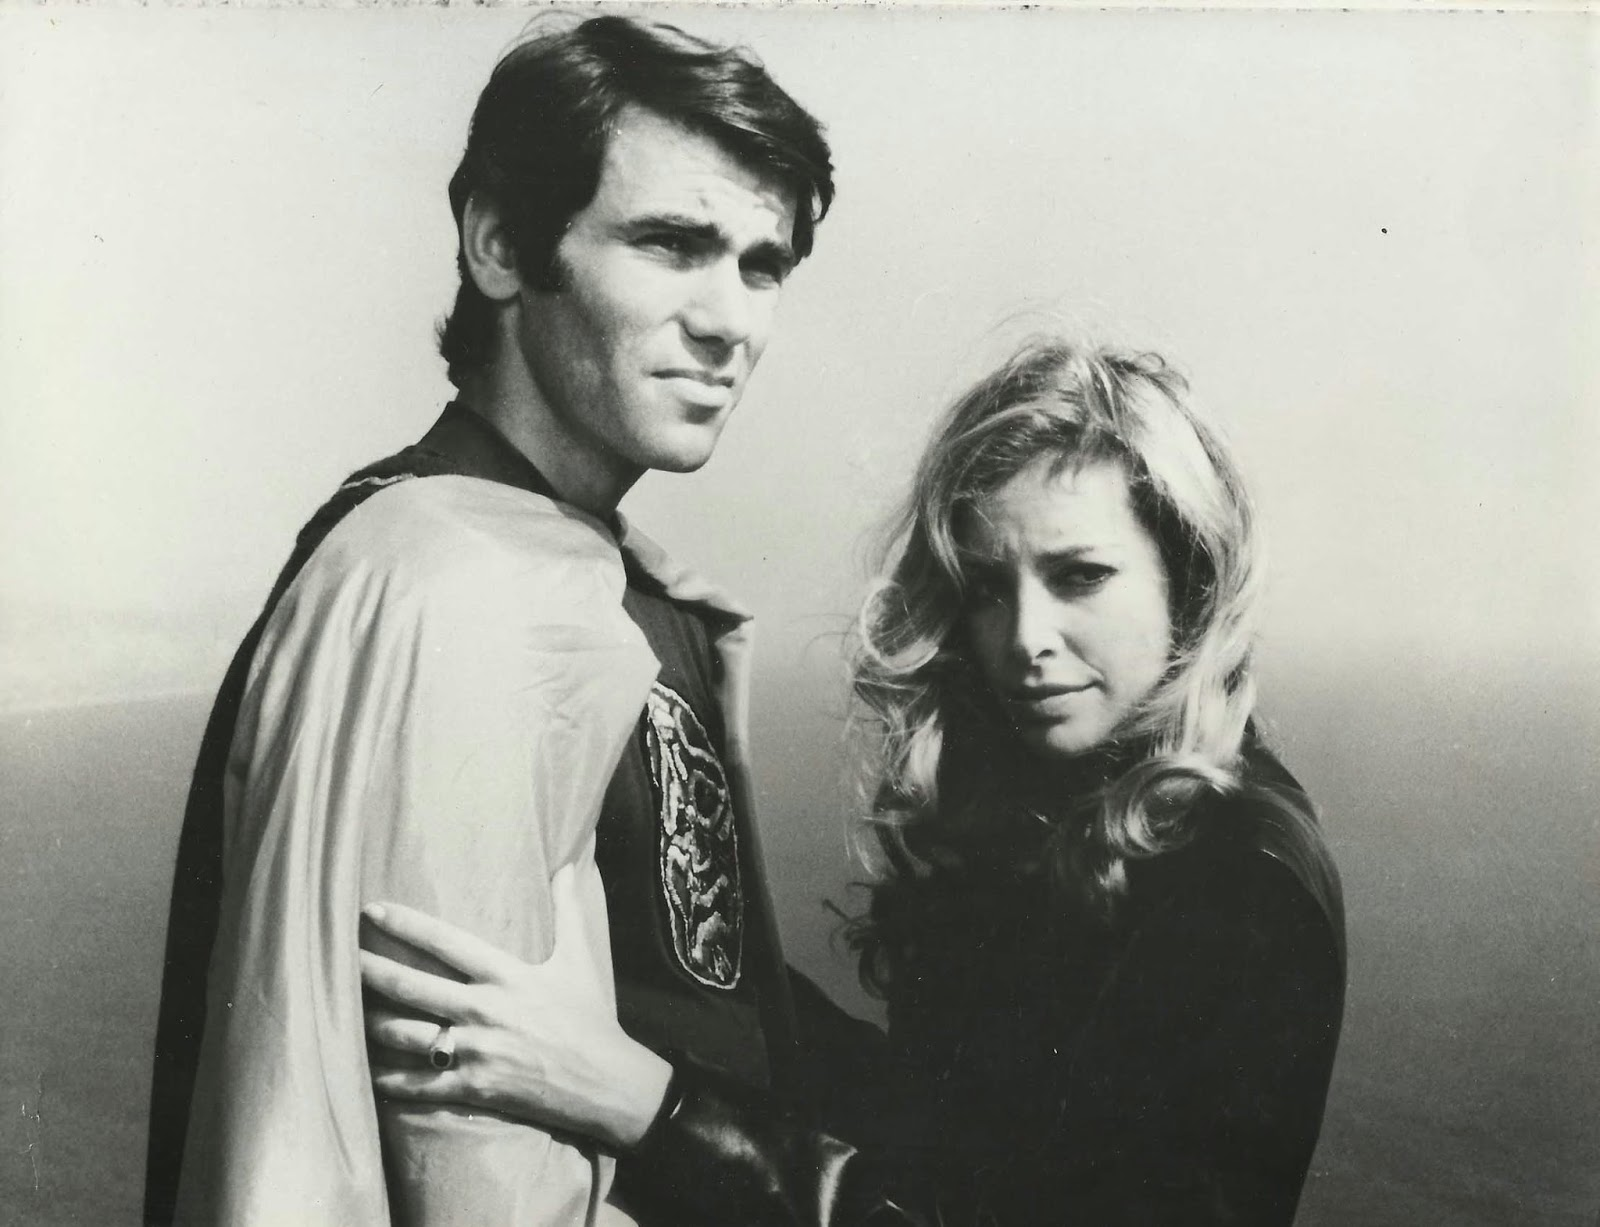 Walter George Alton as The Pumaman with Sydne Rome in The Pumaman (1980)